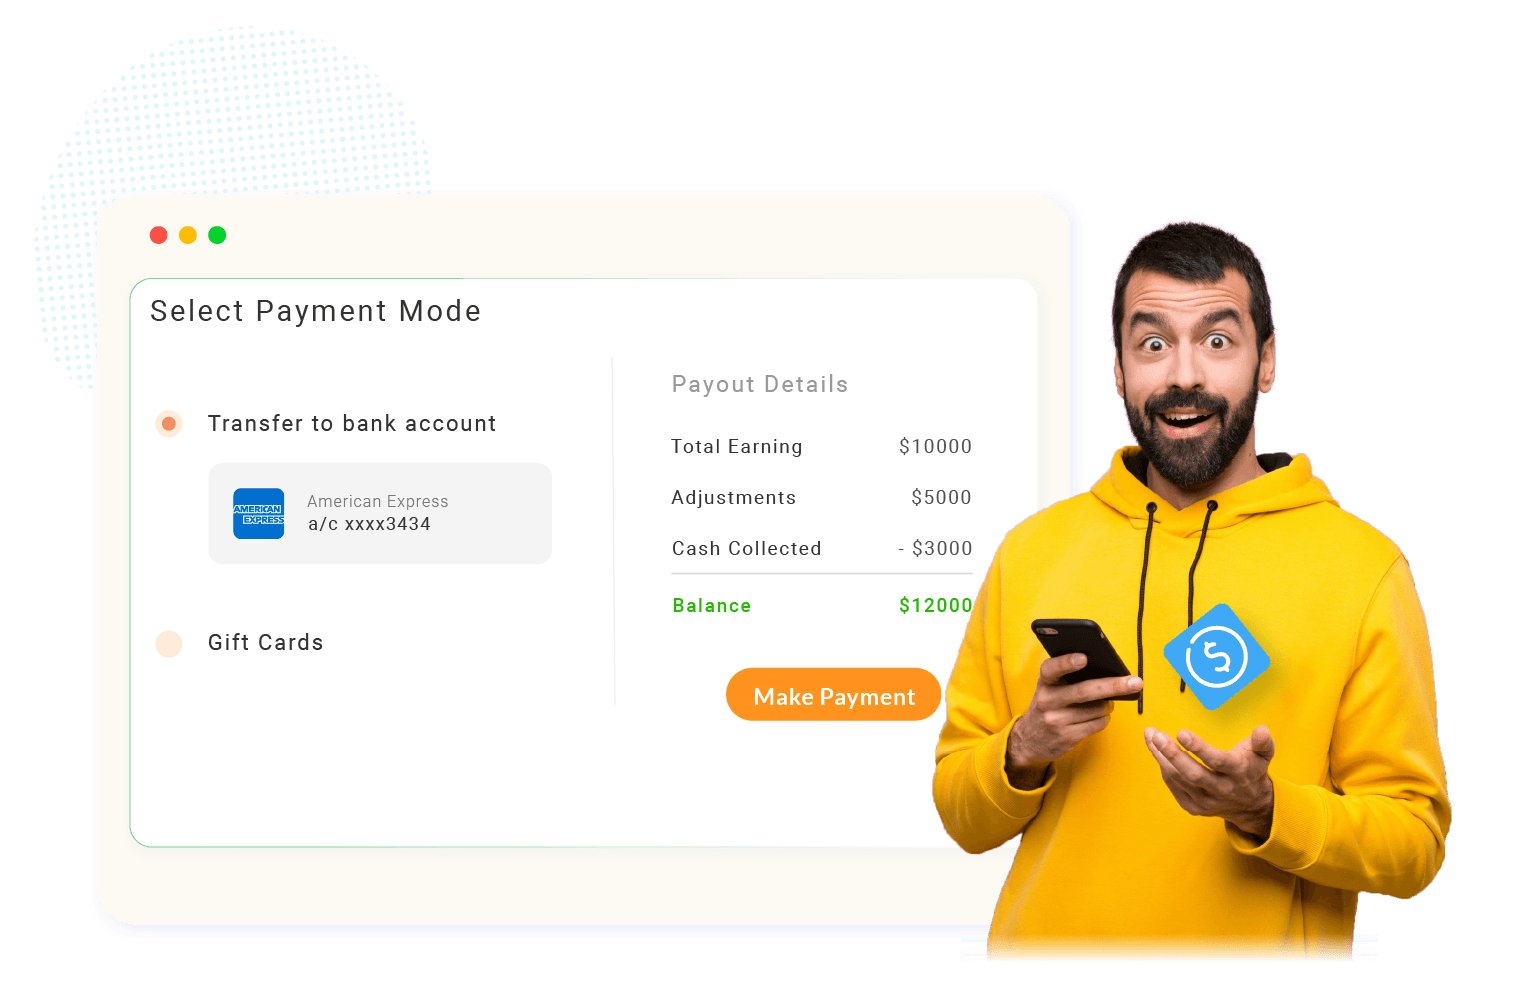 Xoxoday Compass Software - One-click Payments - Instant payments and earning visualizations for fair and transparent disbursals.